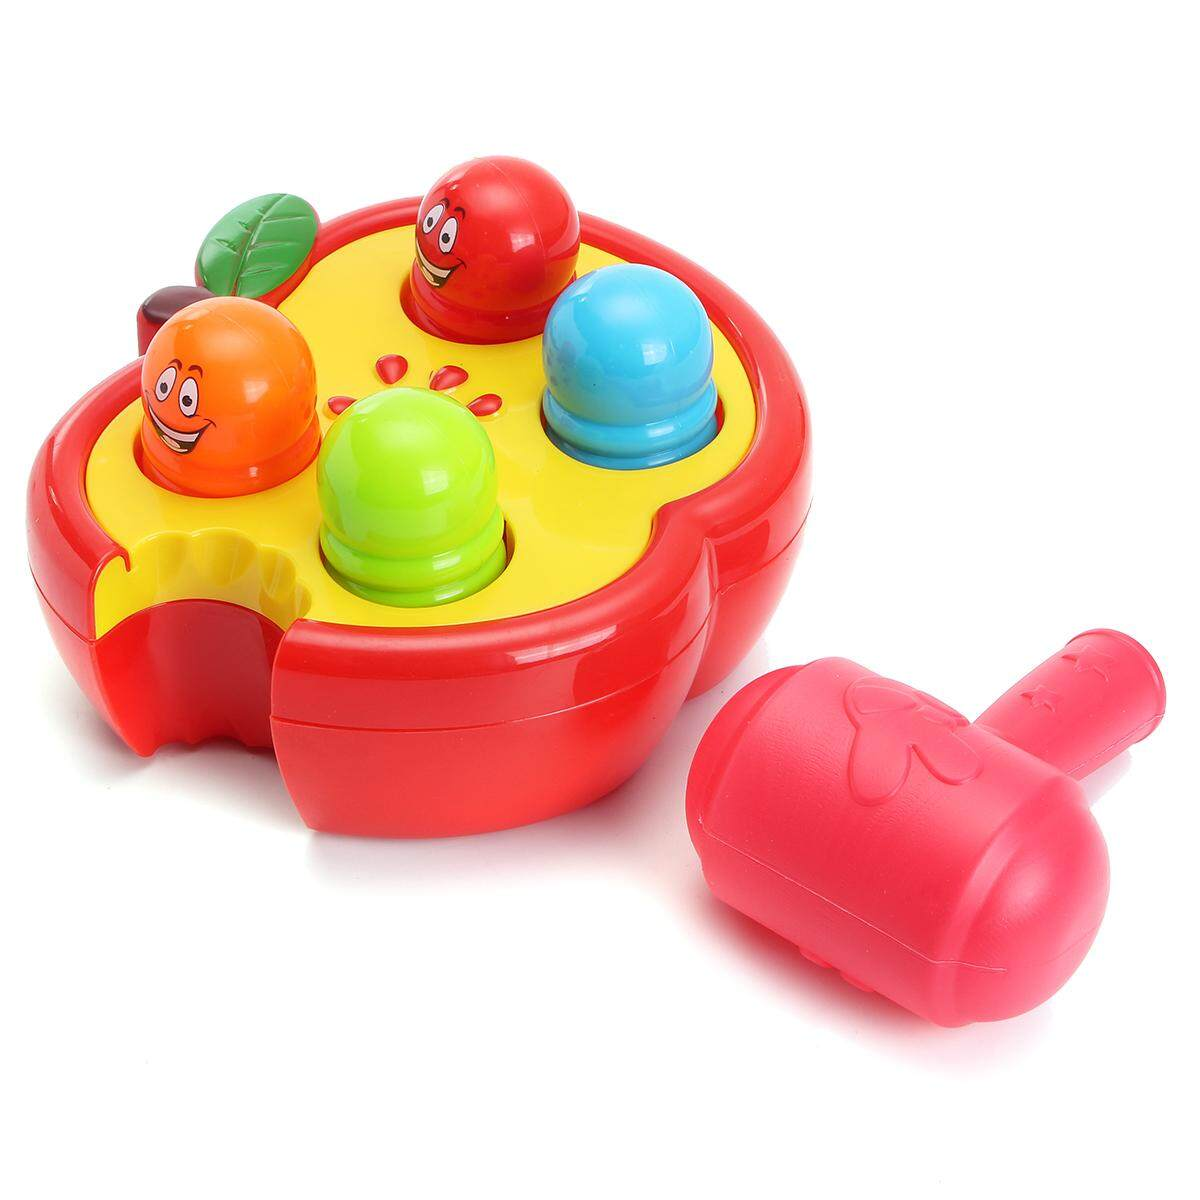 Electronic Percussion Toys Fruitworm Whac-A-Mole Game Sound Preschool Toddler By Moonbeam.